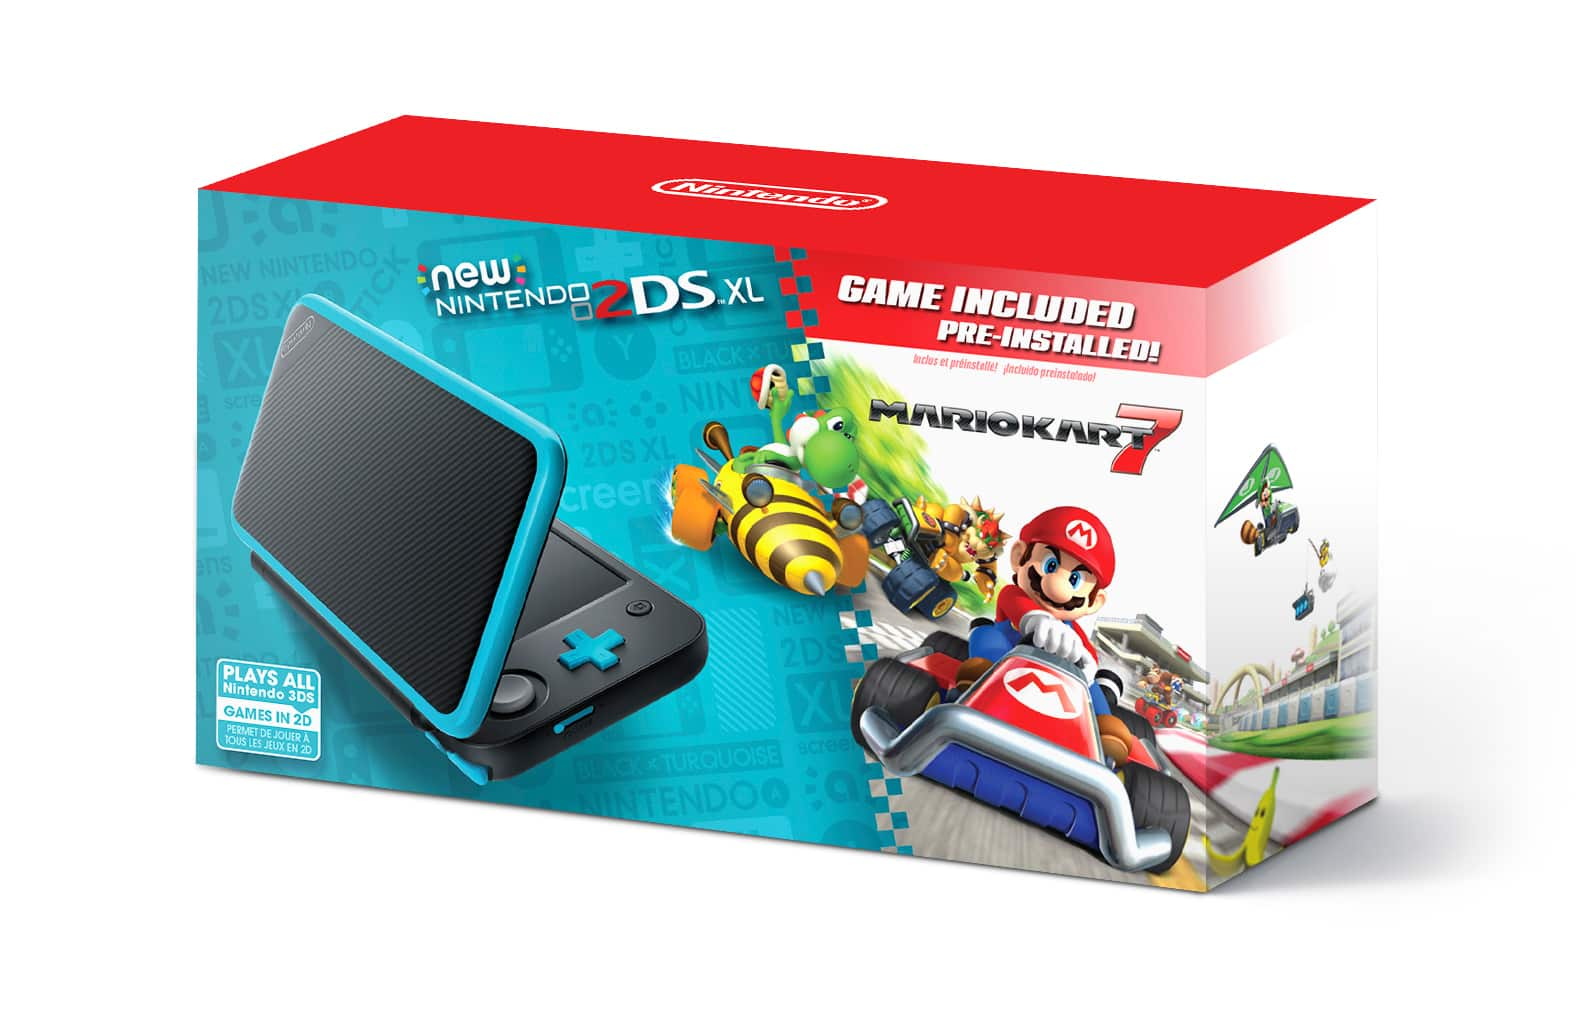 New Nintendo 2DS XL System w/ Mario Kart 7 Pre-installed, Black & Turquoise $99.99